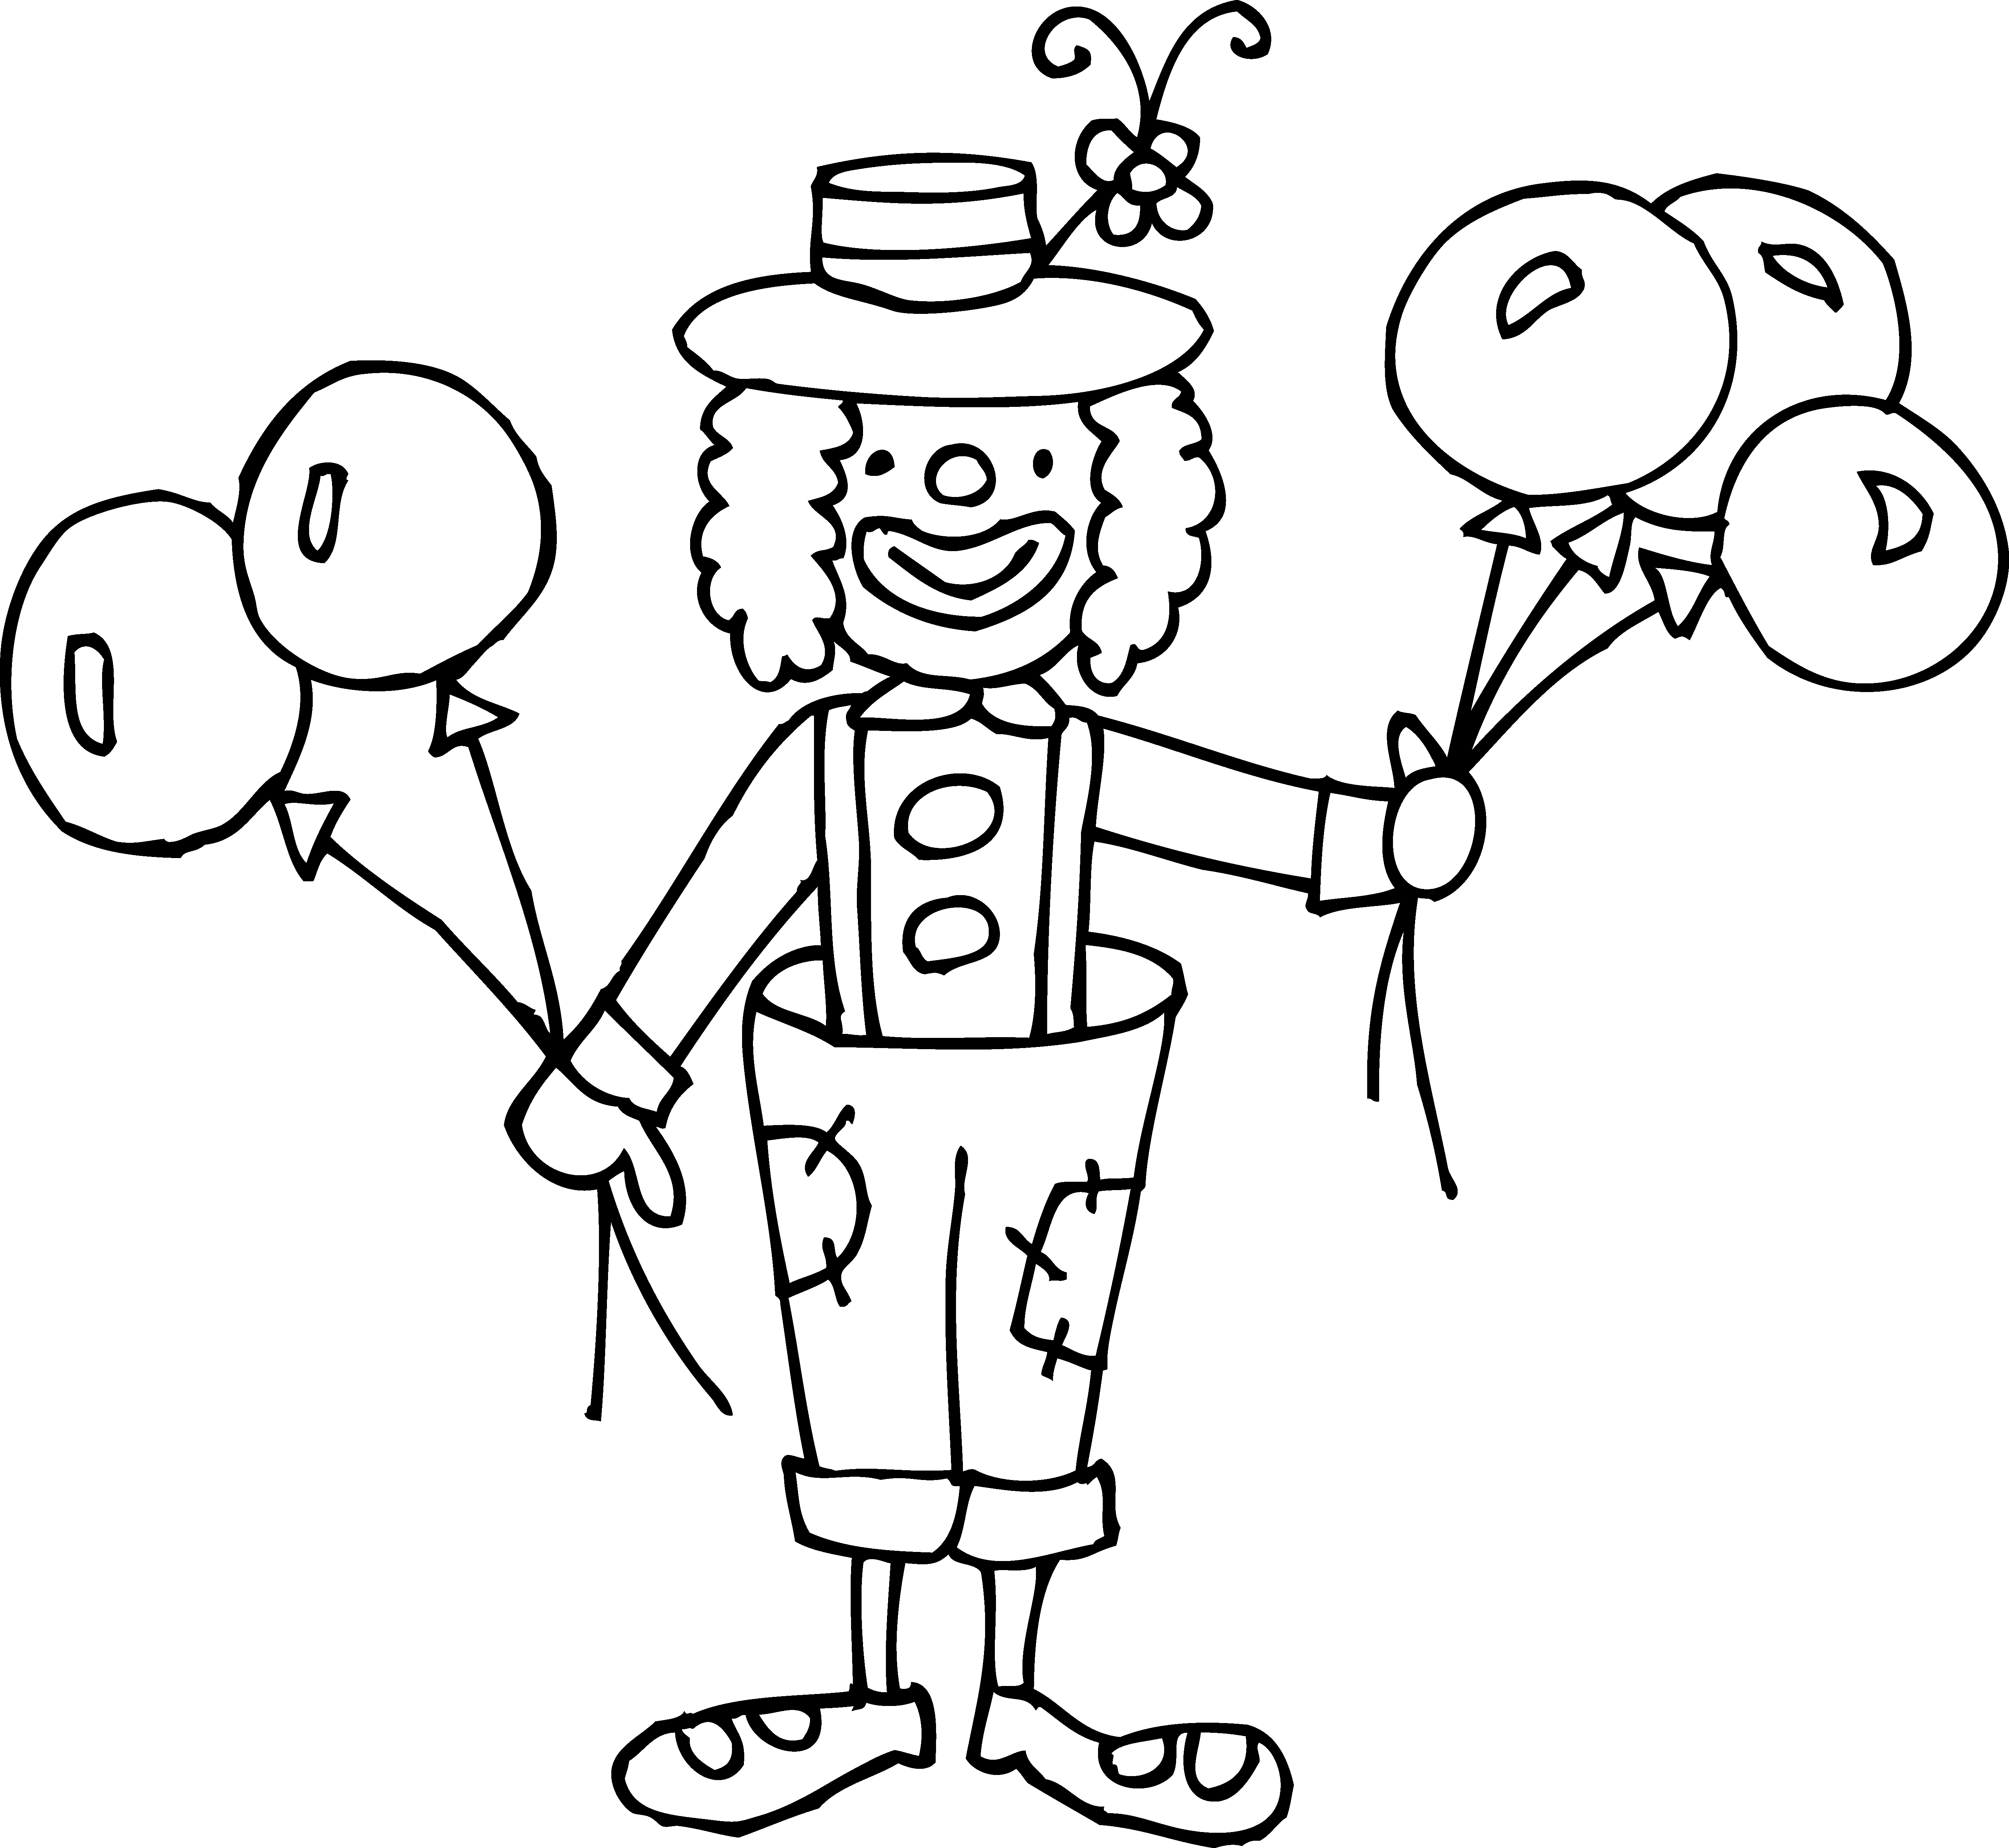 Silly Clown Coloring Page - Free Clip Art